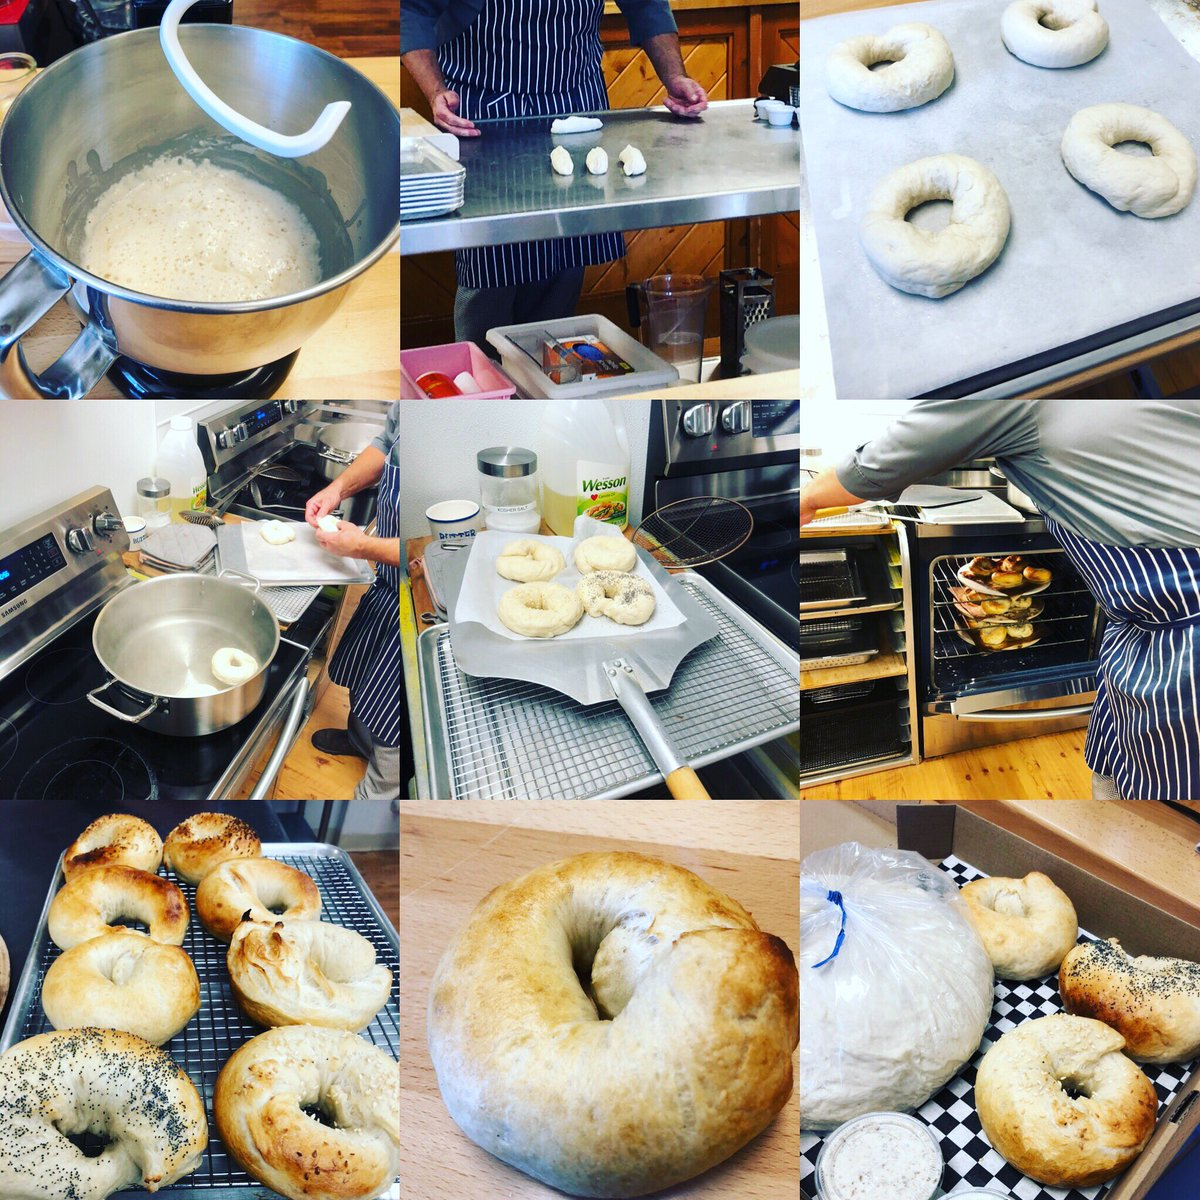 Bagel class today at @theavlkitchen was doughlicious! Came home with dough to make 8 more - which I can't wait to share. Highly recommend classes at this school - laid back and full of great tips. I'm (bread) hooked! #bagels #bagelboss #cookingskills<br>http://pic.twitter.com/UBVIFKvGVU